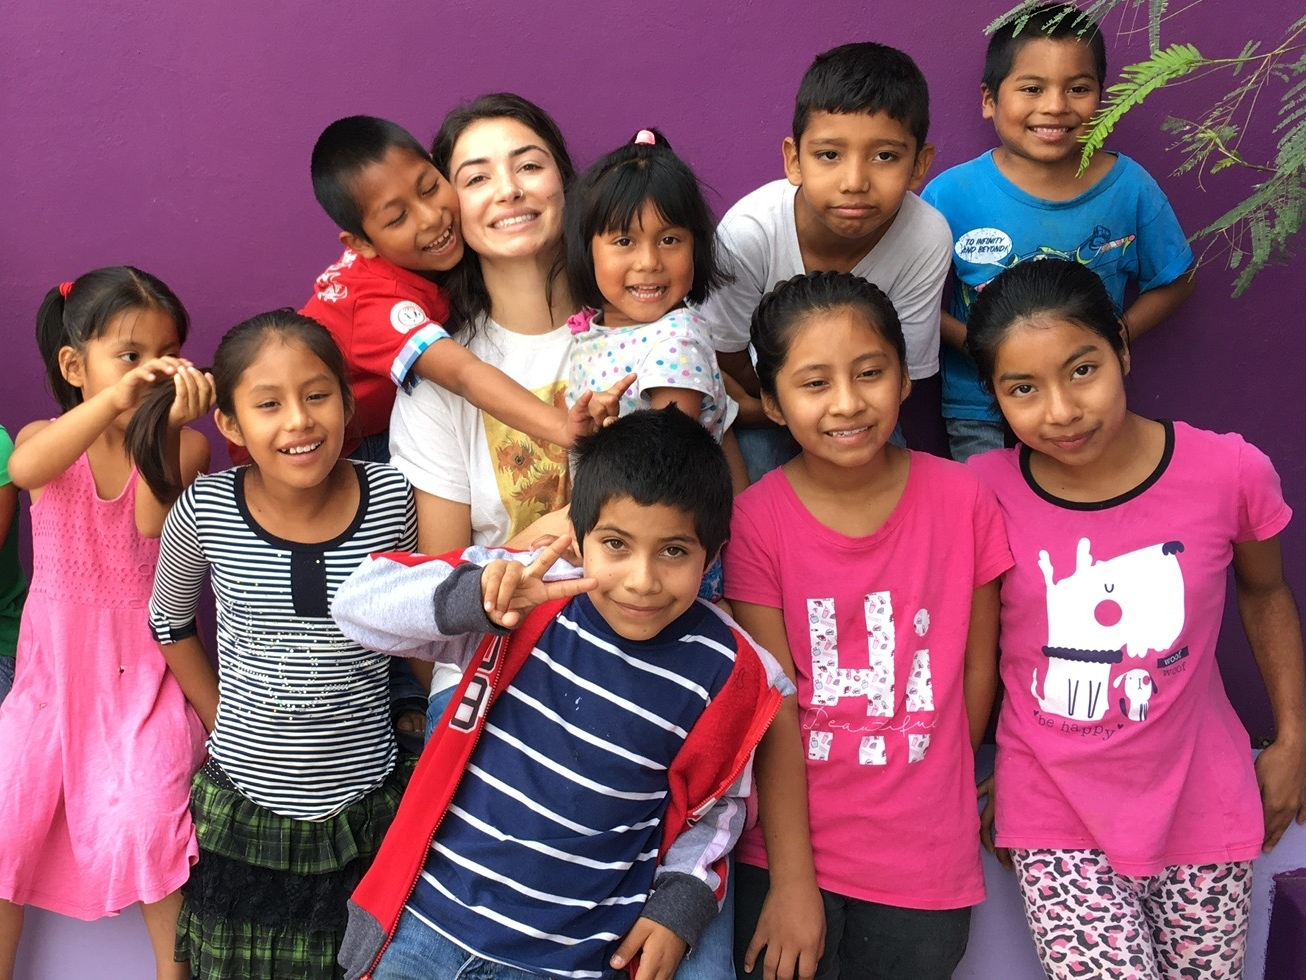 Volunteer Coordinator Jasmine Martier with the kids at the Simply Smiles Home for Children in Oaxaca, Mexico